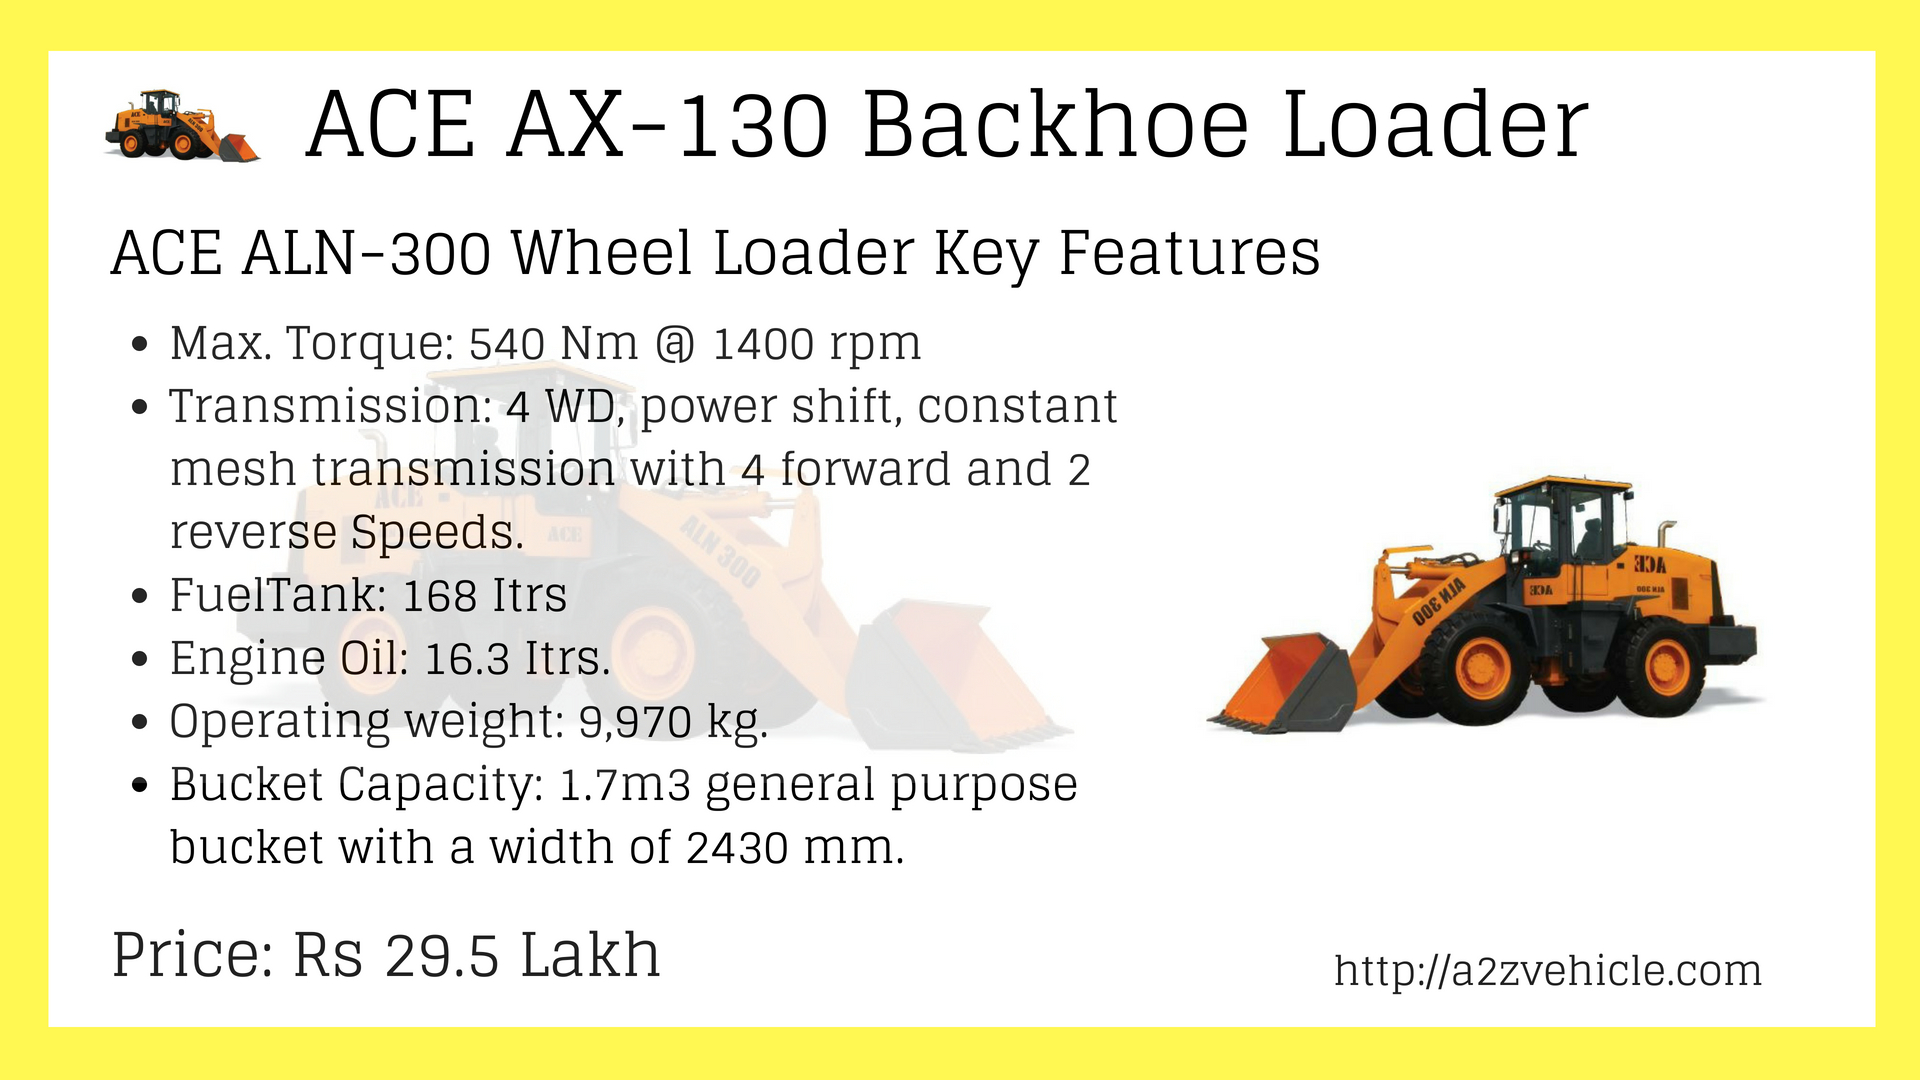 ACE ALN-300 Wheel Loader Price specs